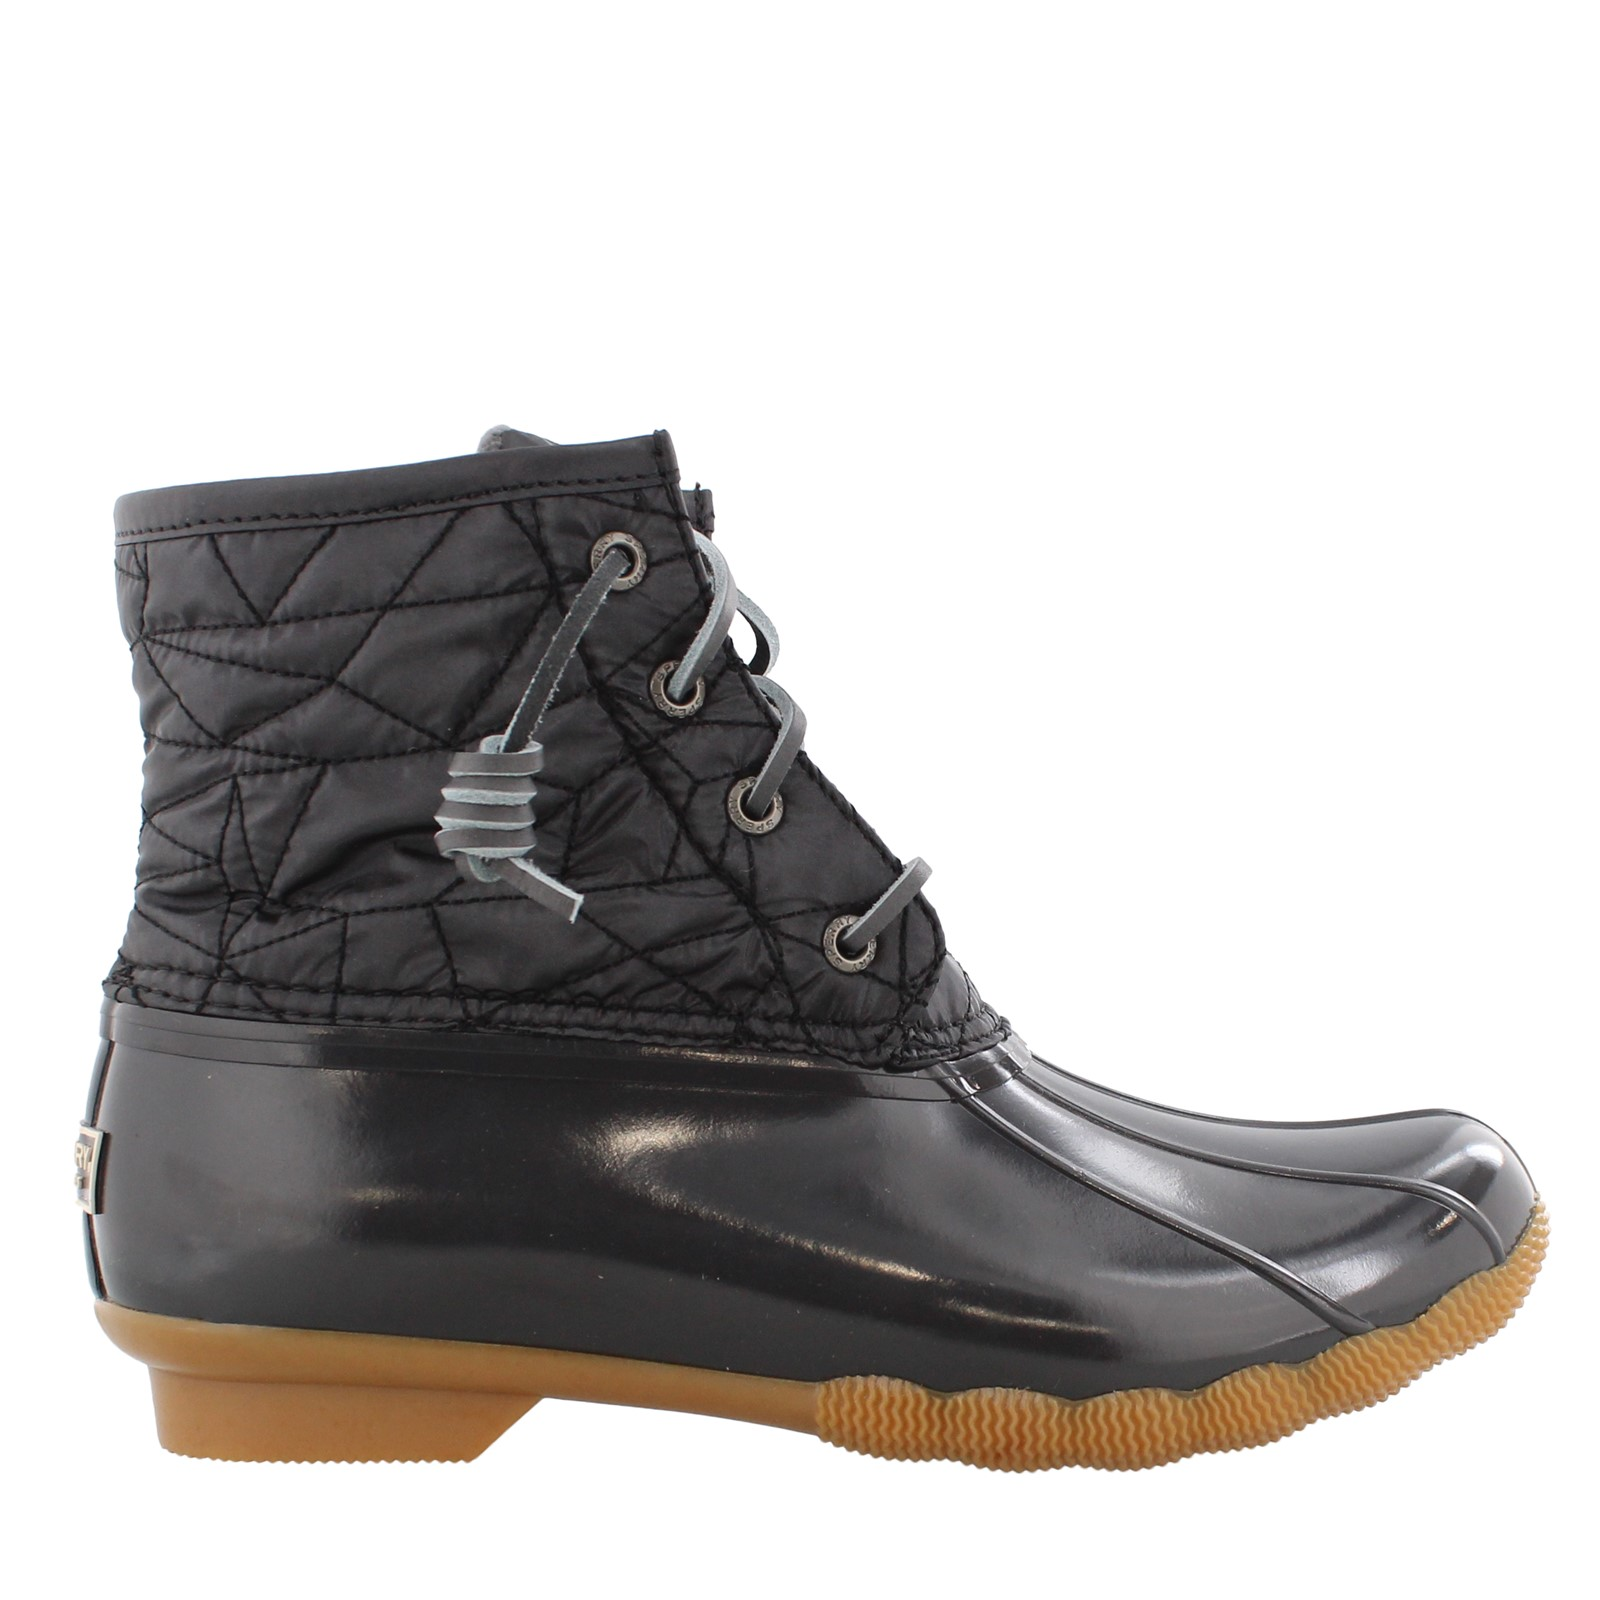 Women's Sperry, Saltwater Quilted Nylon Duck Boots